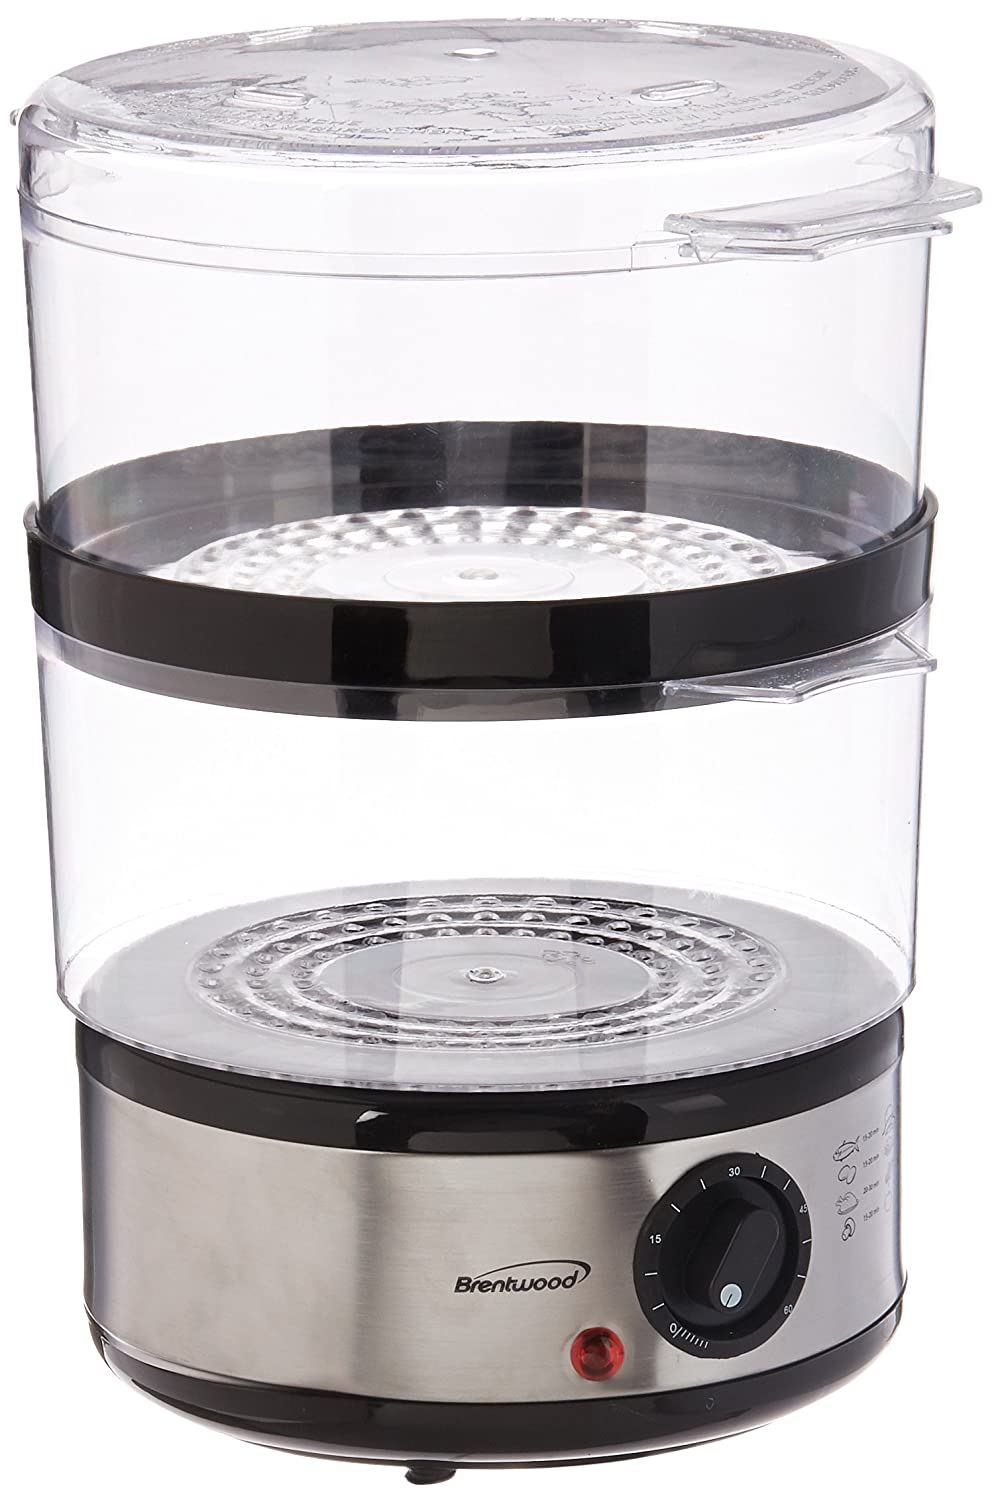 Brentwood TS-1005 Electric Food Steamer One Size Silver